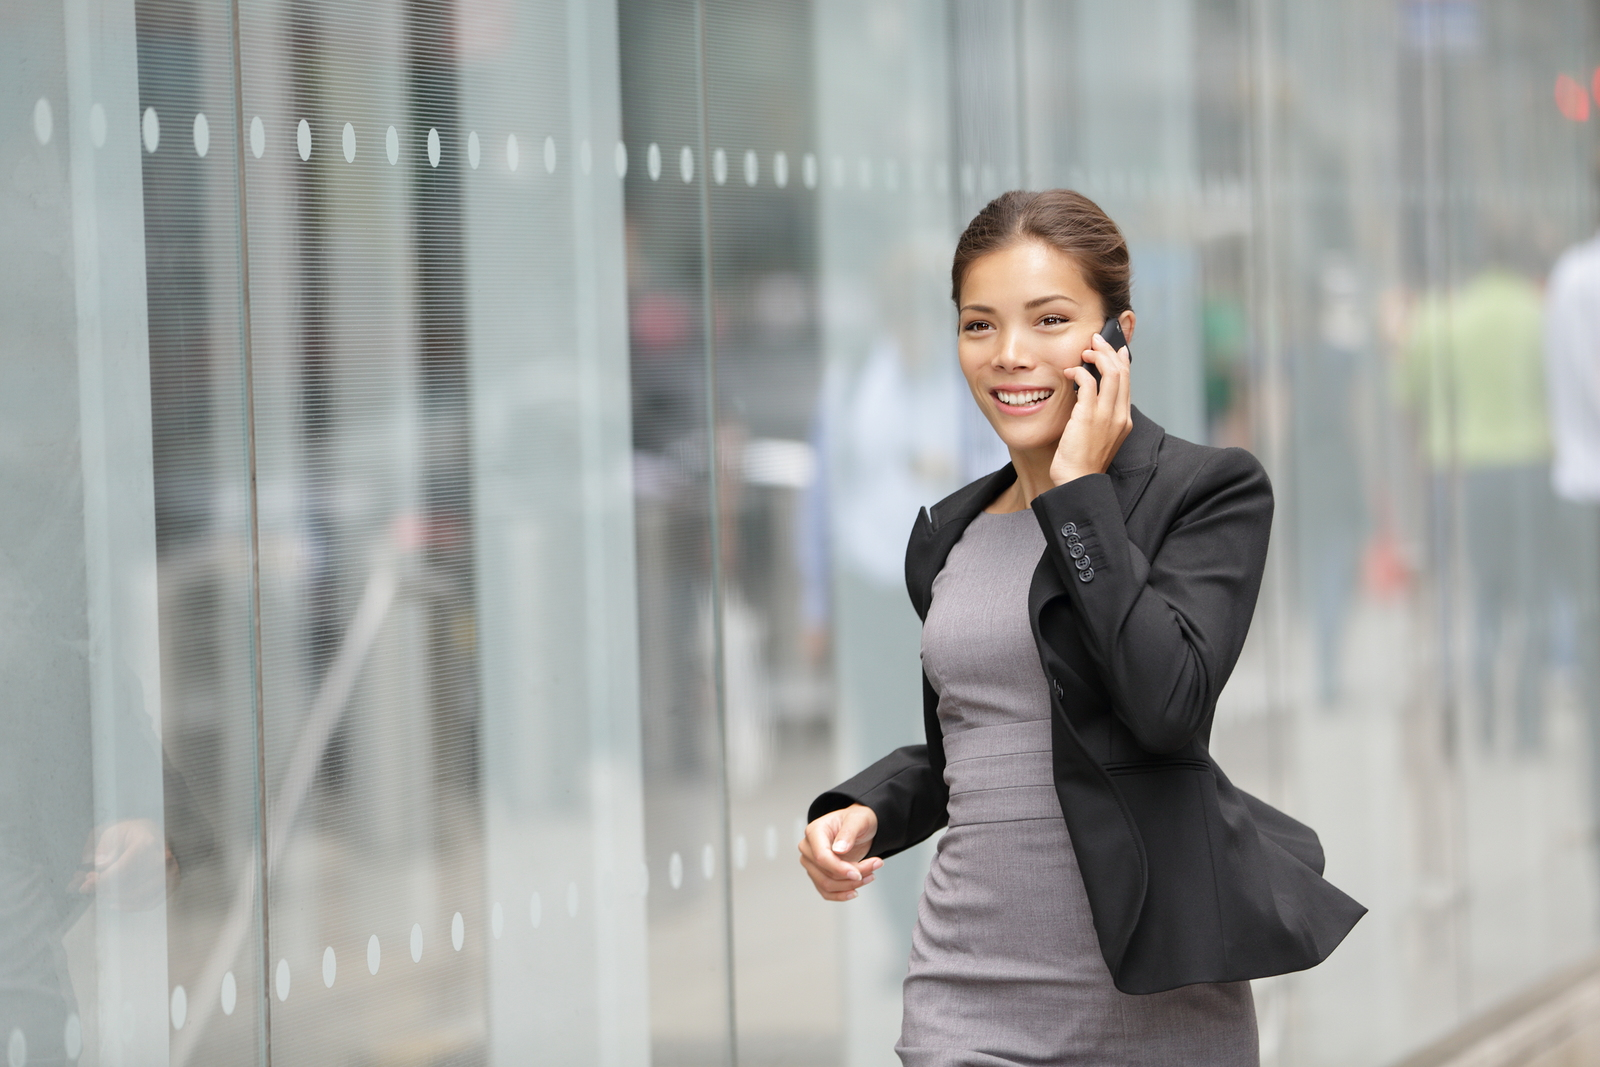 Businesswoman on cellphone running while talking on smart phone. Happy smiling mixed race Asian / Caucasian business woman busy. Image from Manhattan, New York City.